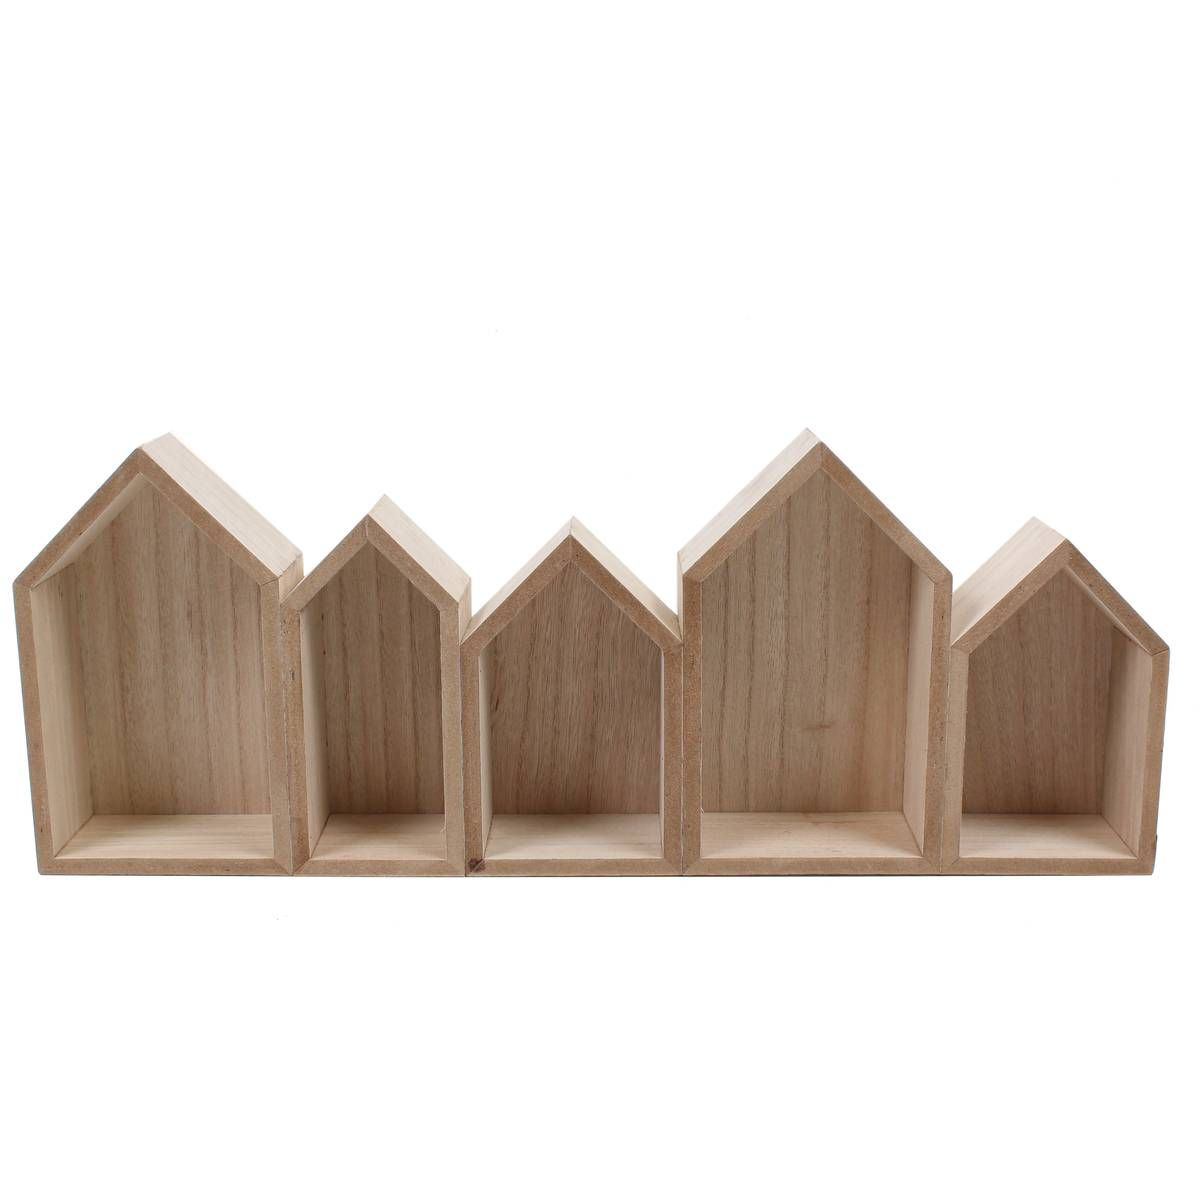 Five Wooden Houses Shelf 52 X 20 X 7 Cm | Hobbycraft | Nursery ...